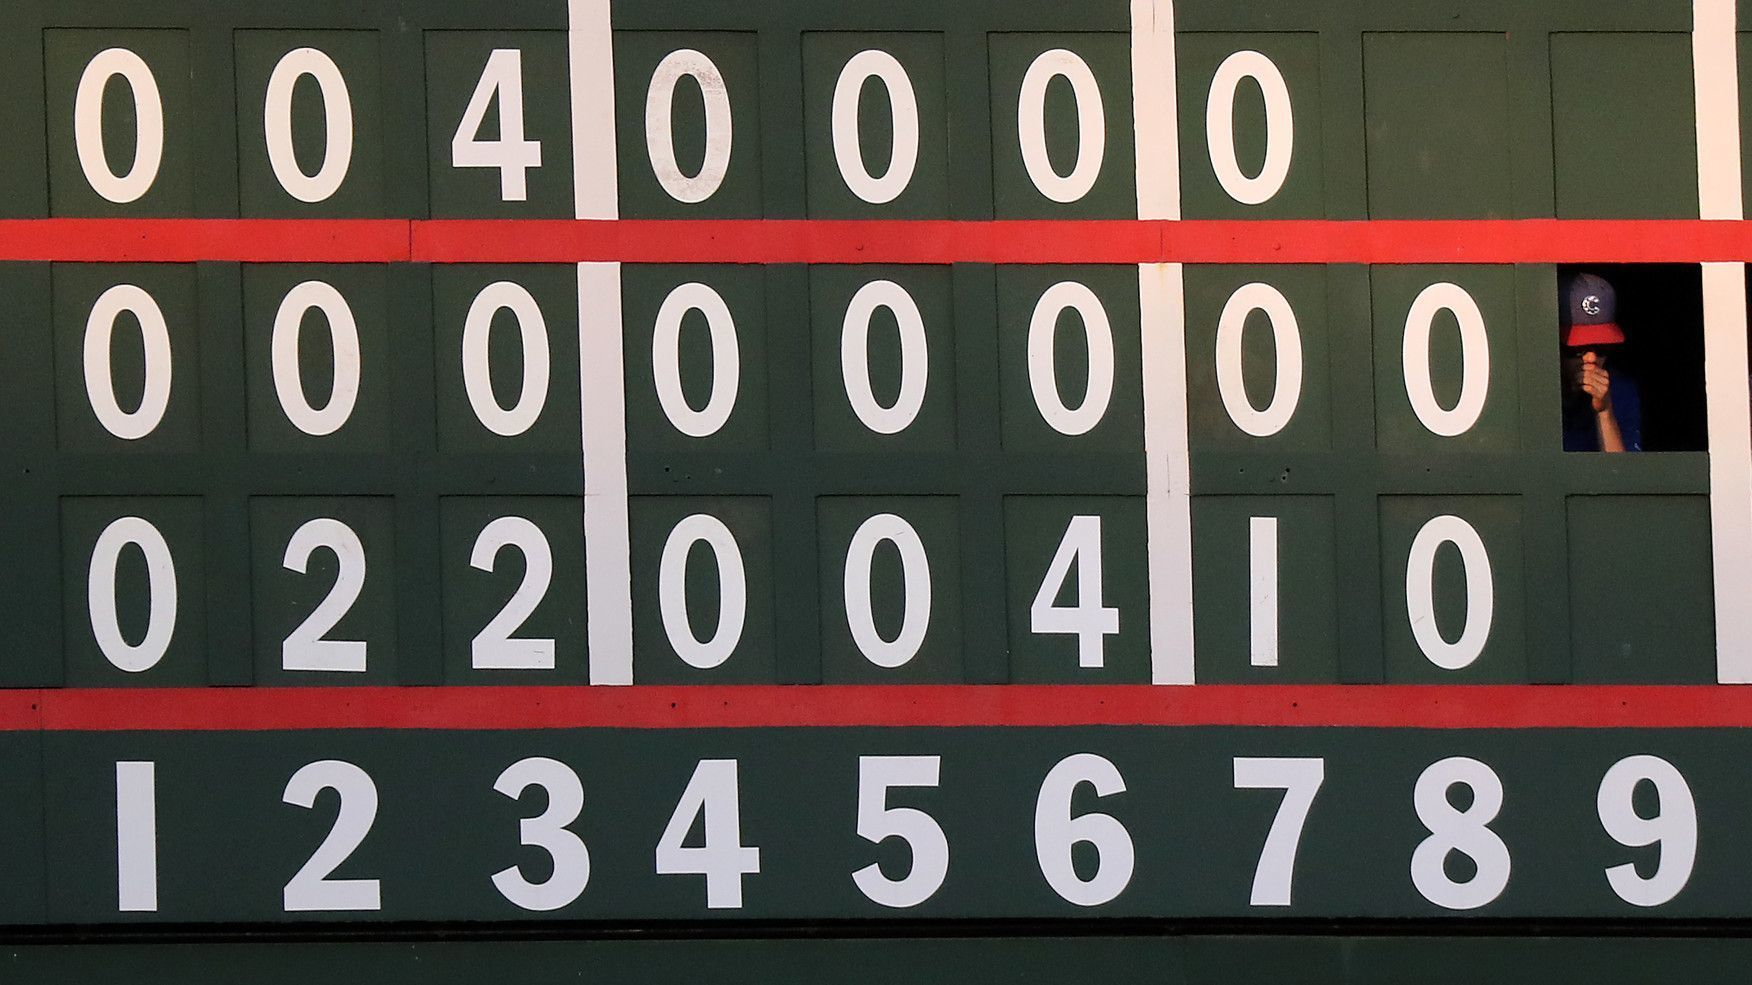 Monday's scoreboard malfunction at Wrigley Field was a reminder — despite the well-received renovation — of what we love about the park